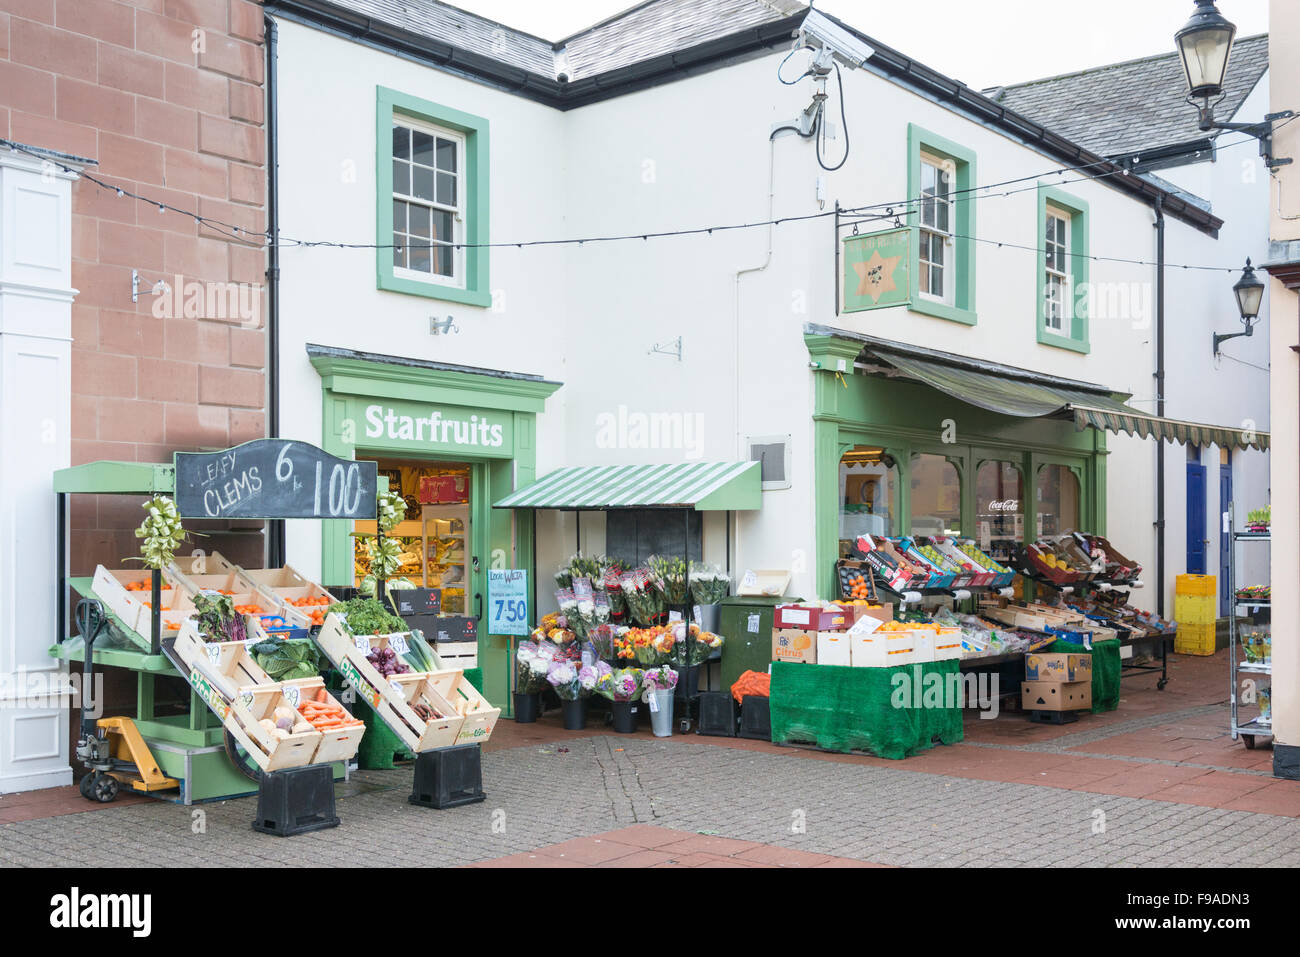 Starfruits vegetable shop or greengrocers in Penrith Cumbria UK Stock Photo